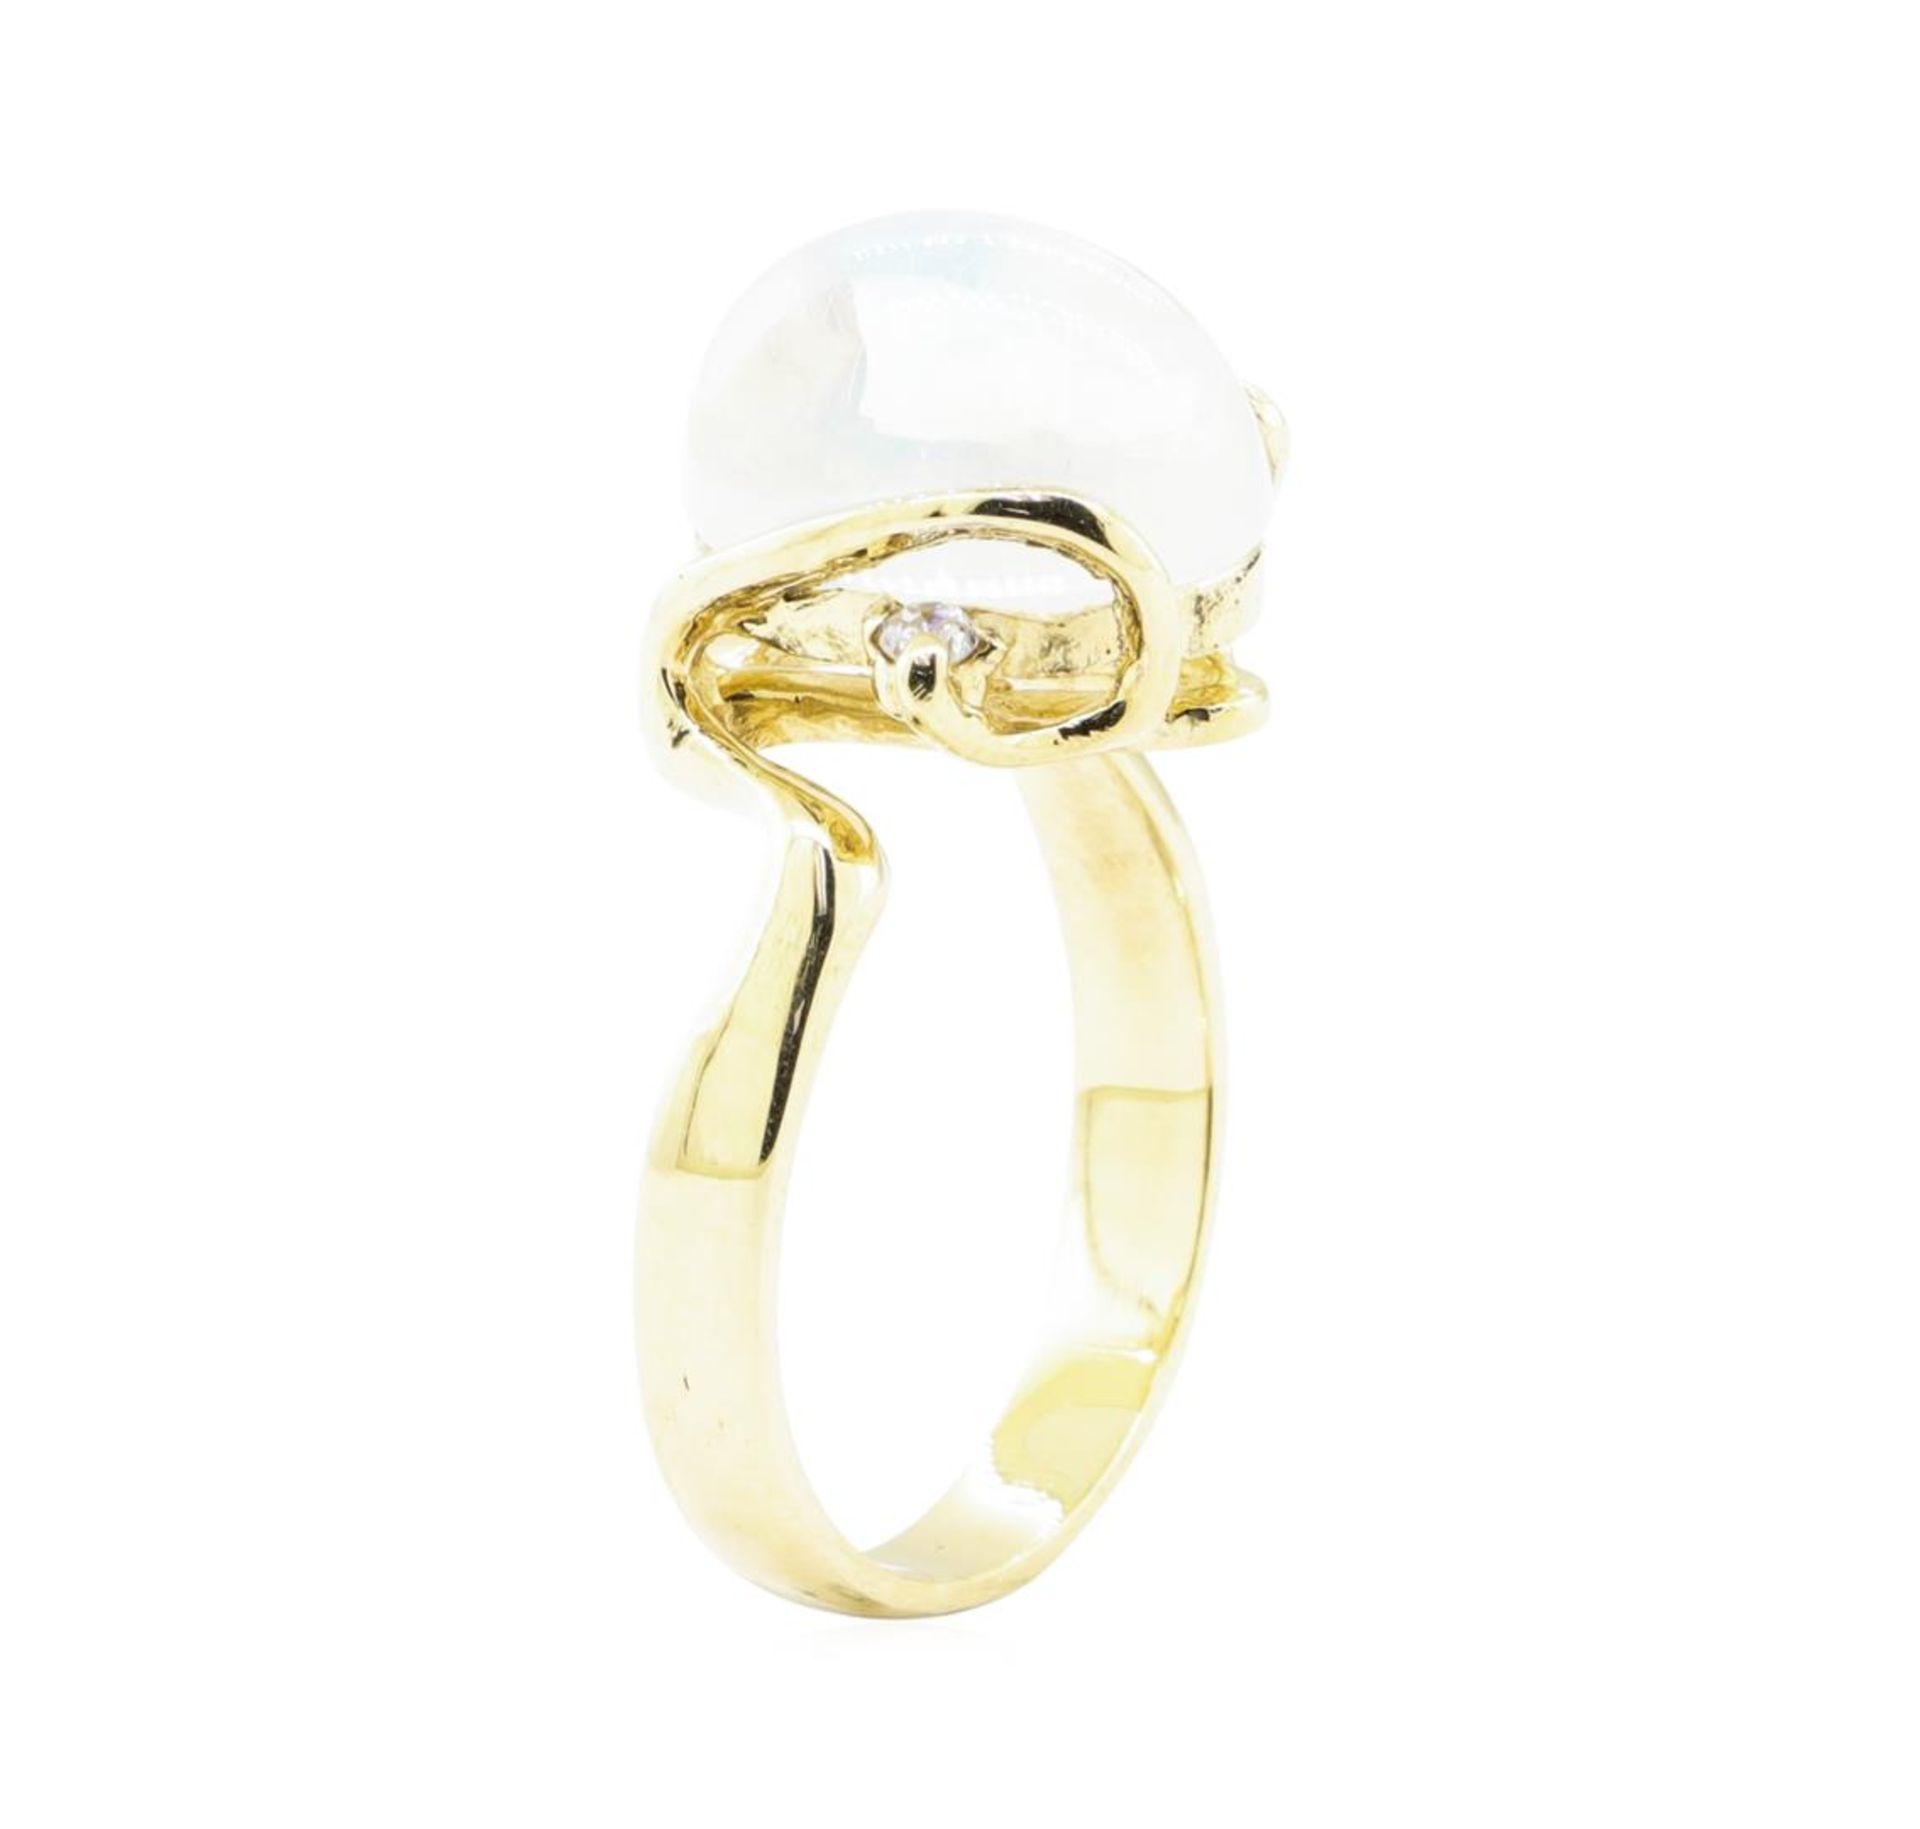 6.88 ctw Opal and Diamond Ring - 14KT Yellow Gold - Image 4 of 4